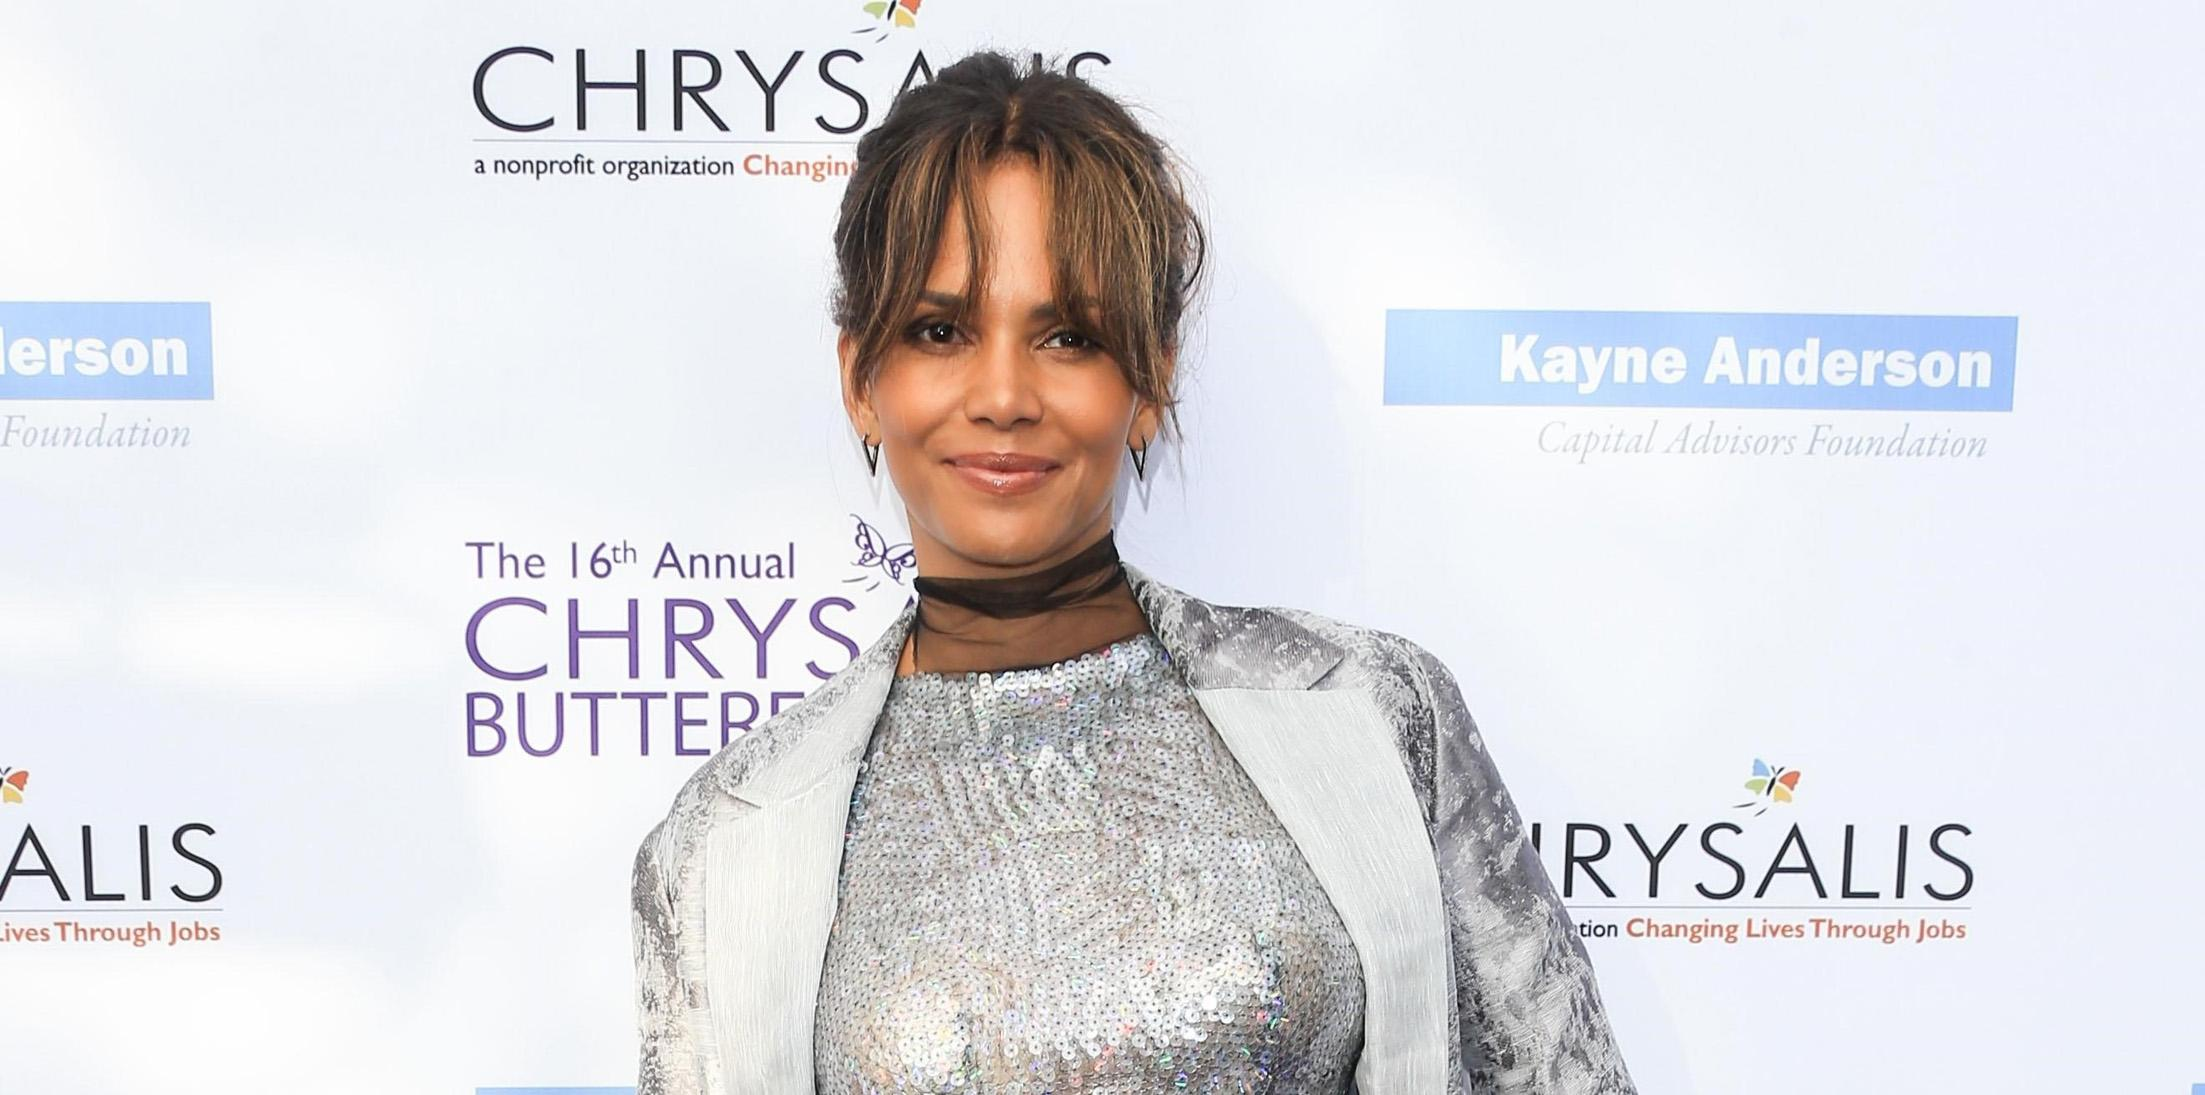 Halle Berry shines at the 16th Annual Chrysalis Butterfly Ball